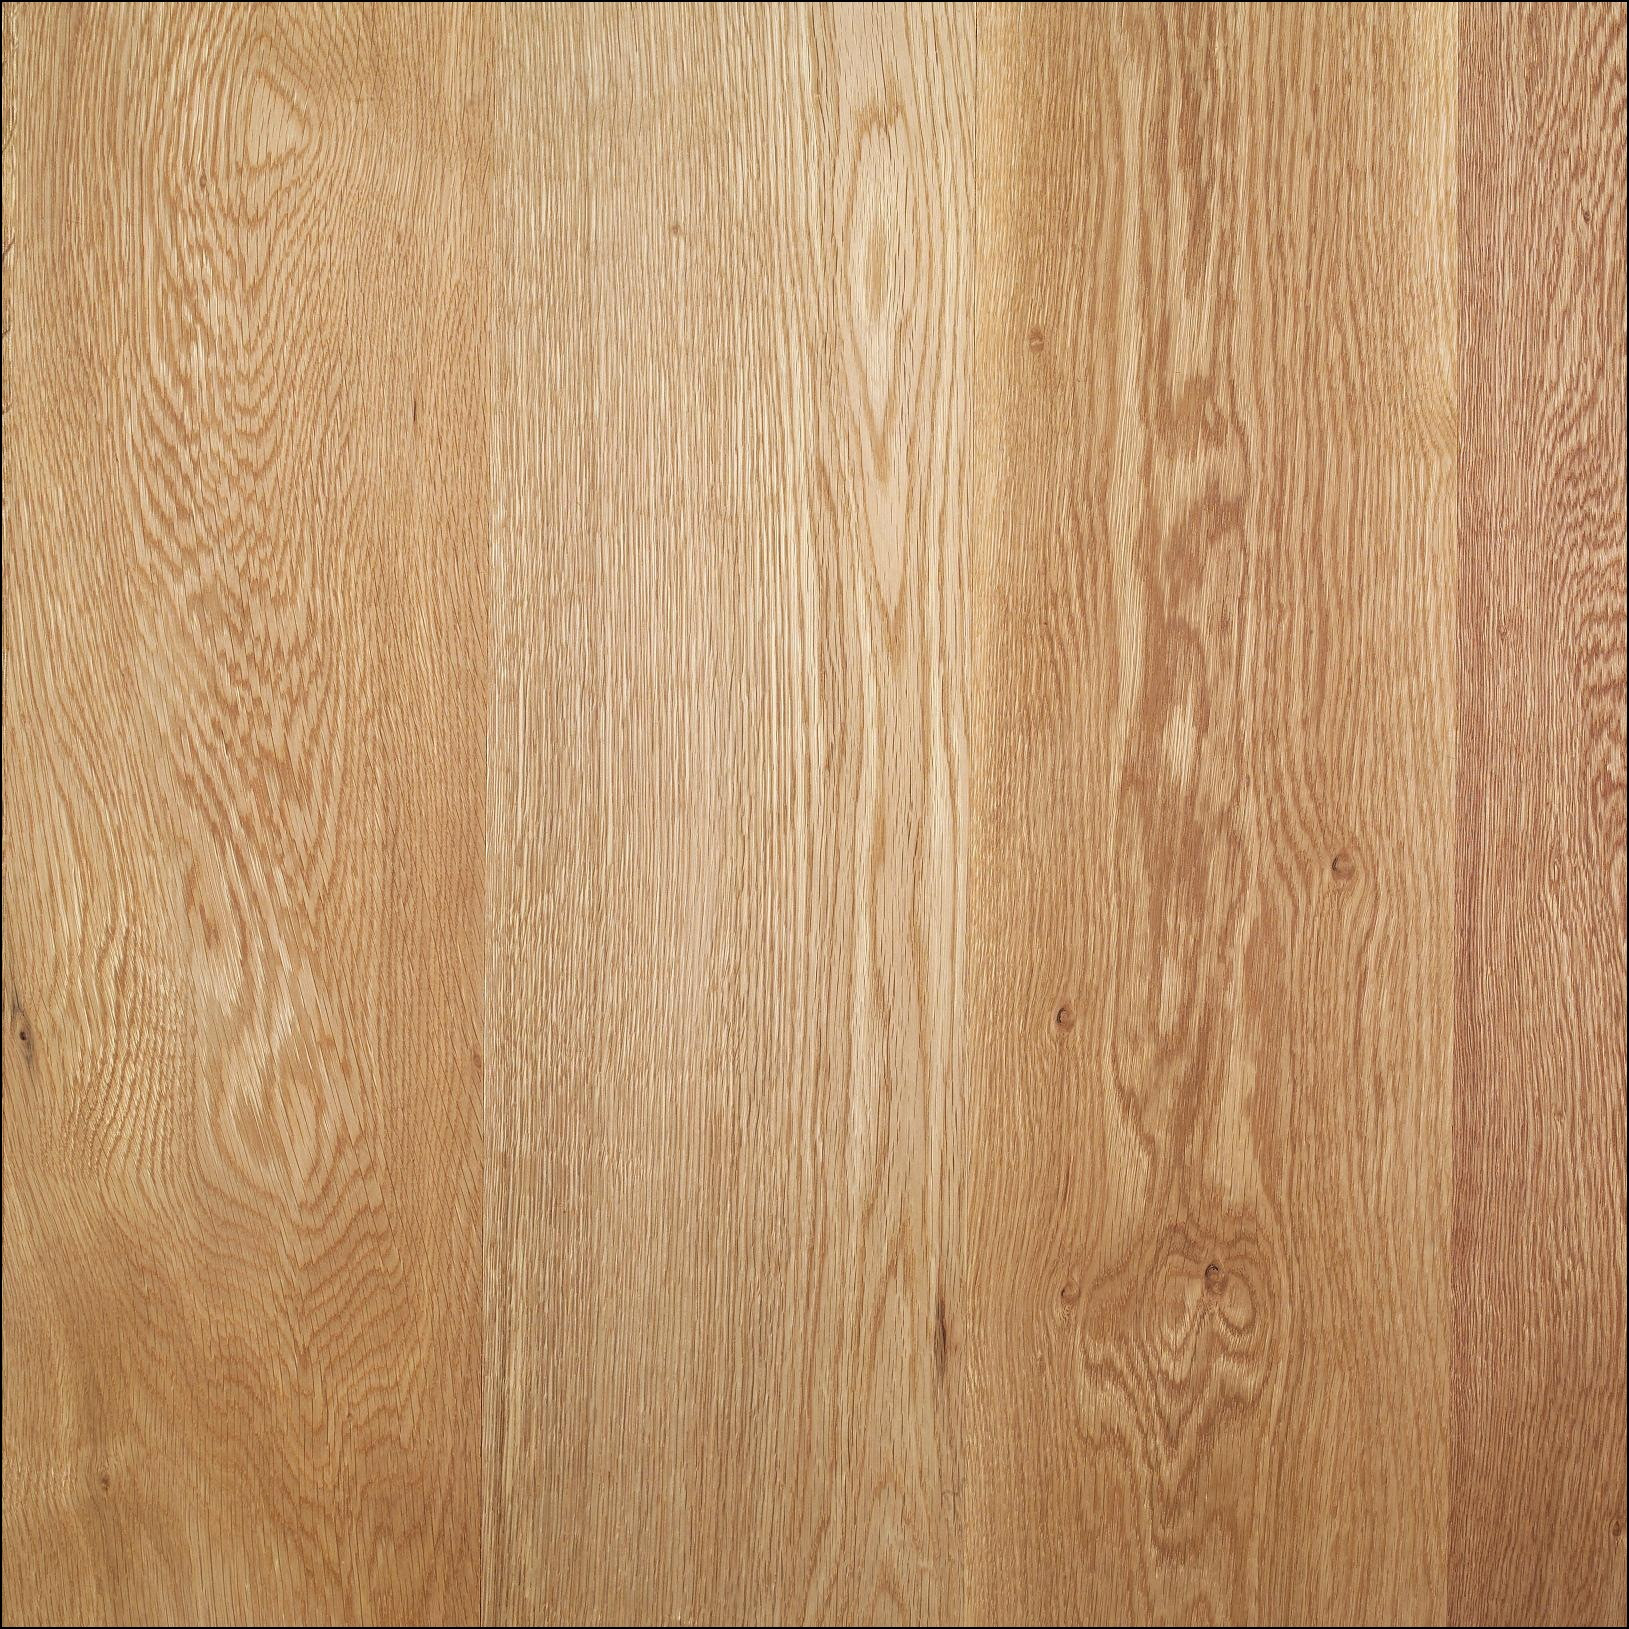 1 1 2 inch red oak hardwood flooring of 2 white oak flooring unfinished images red oak solid hardwood wood intended for 2 white oak flooring unfinished photographies difference between red oak and white oak flooring of 2